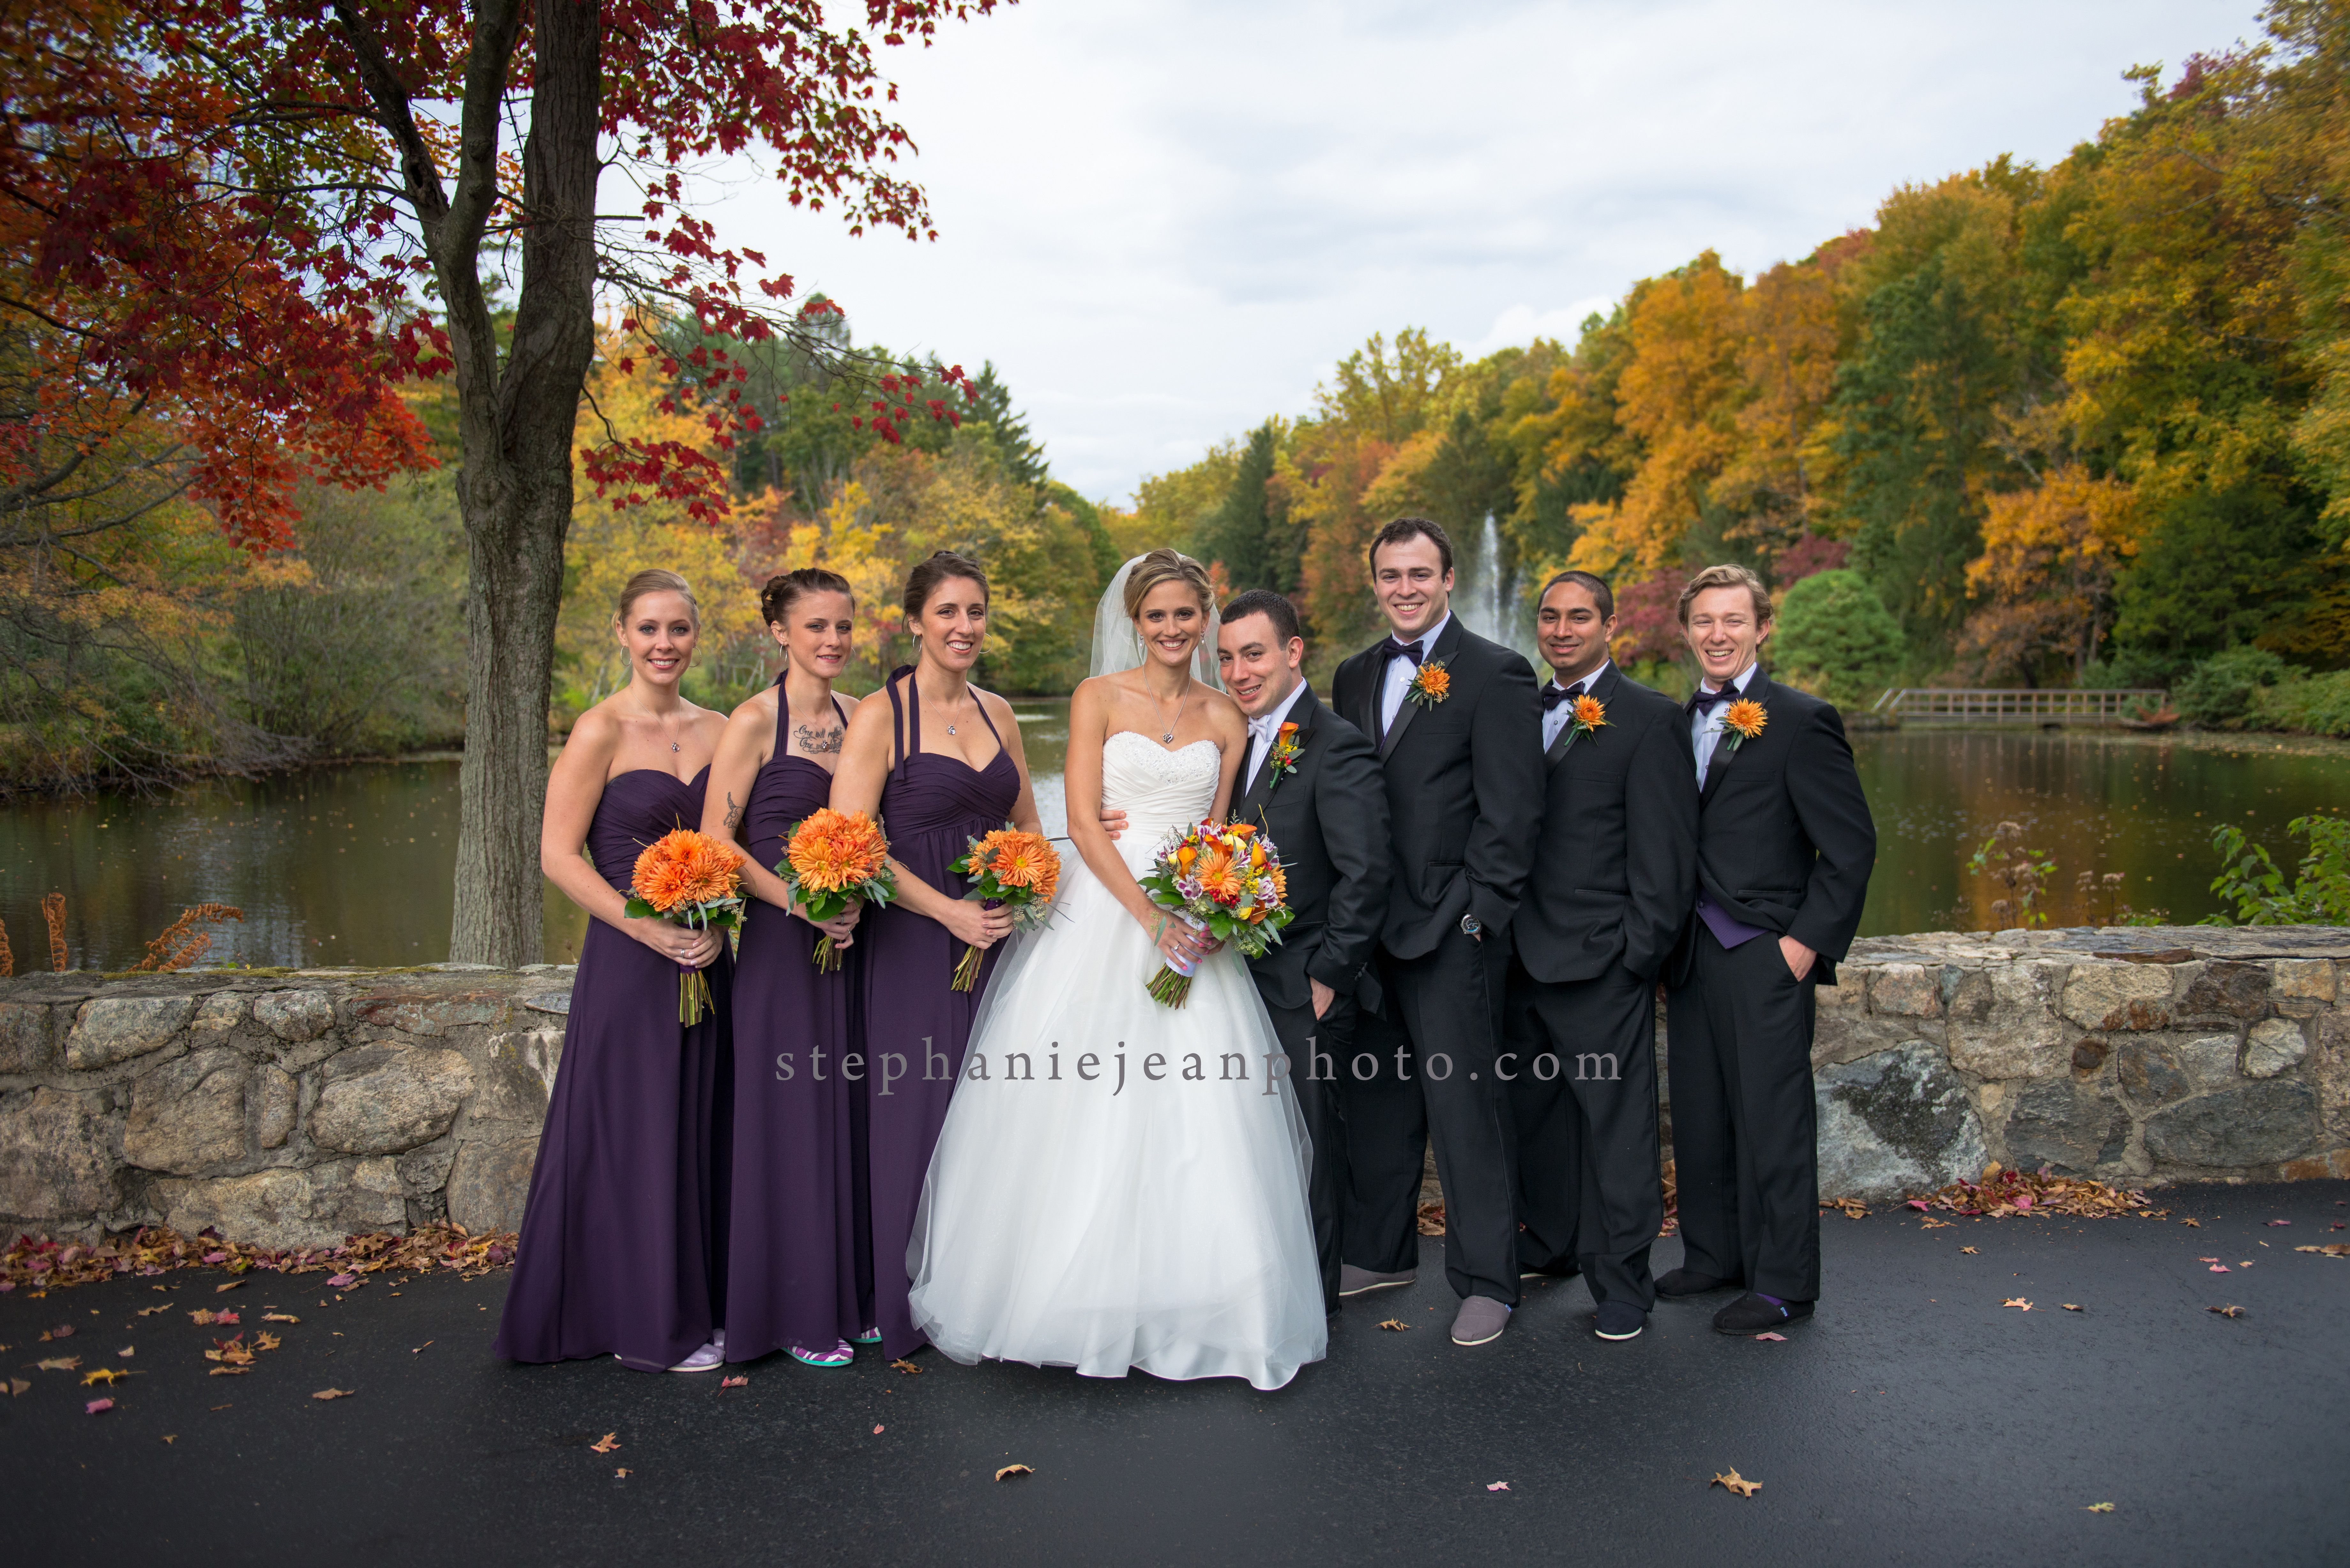 Beautiful bridal party from this fall themed wedding at dolce beautiful bridal party from this fall themed wedding at dolce norwalk ct orange bouquets ombrellifo Image collections